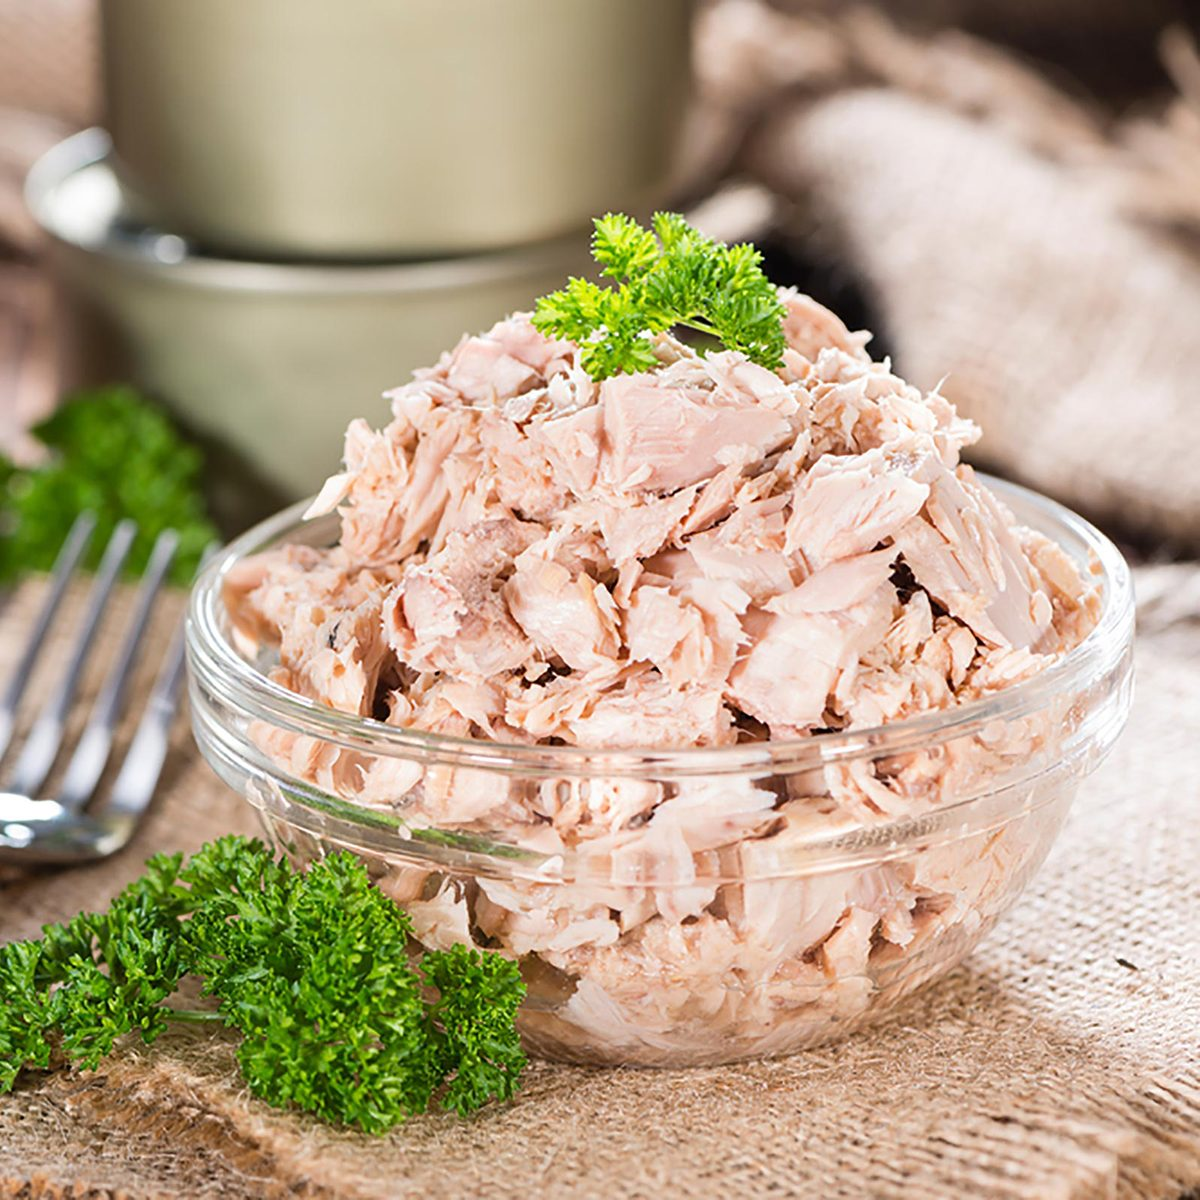 Shredded meat in a bowl